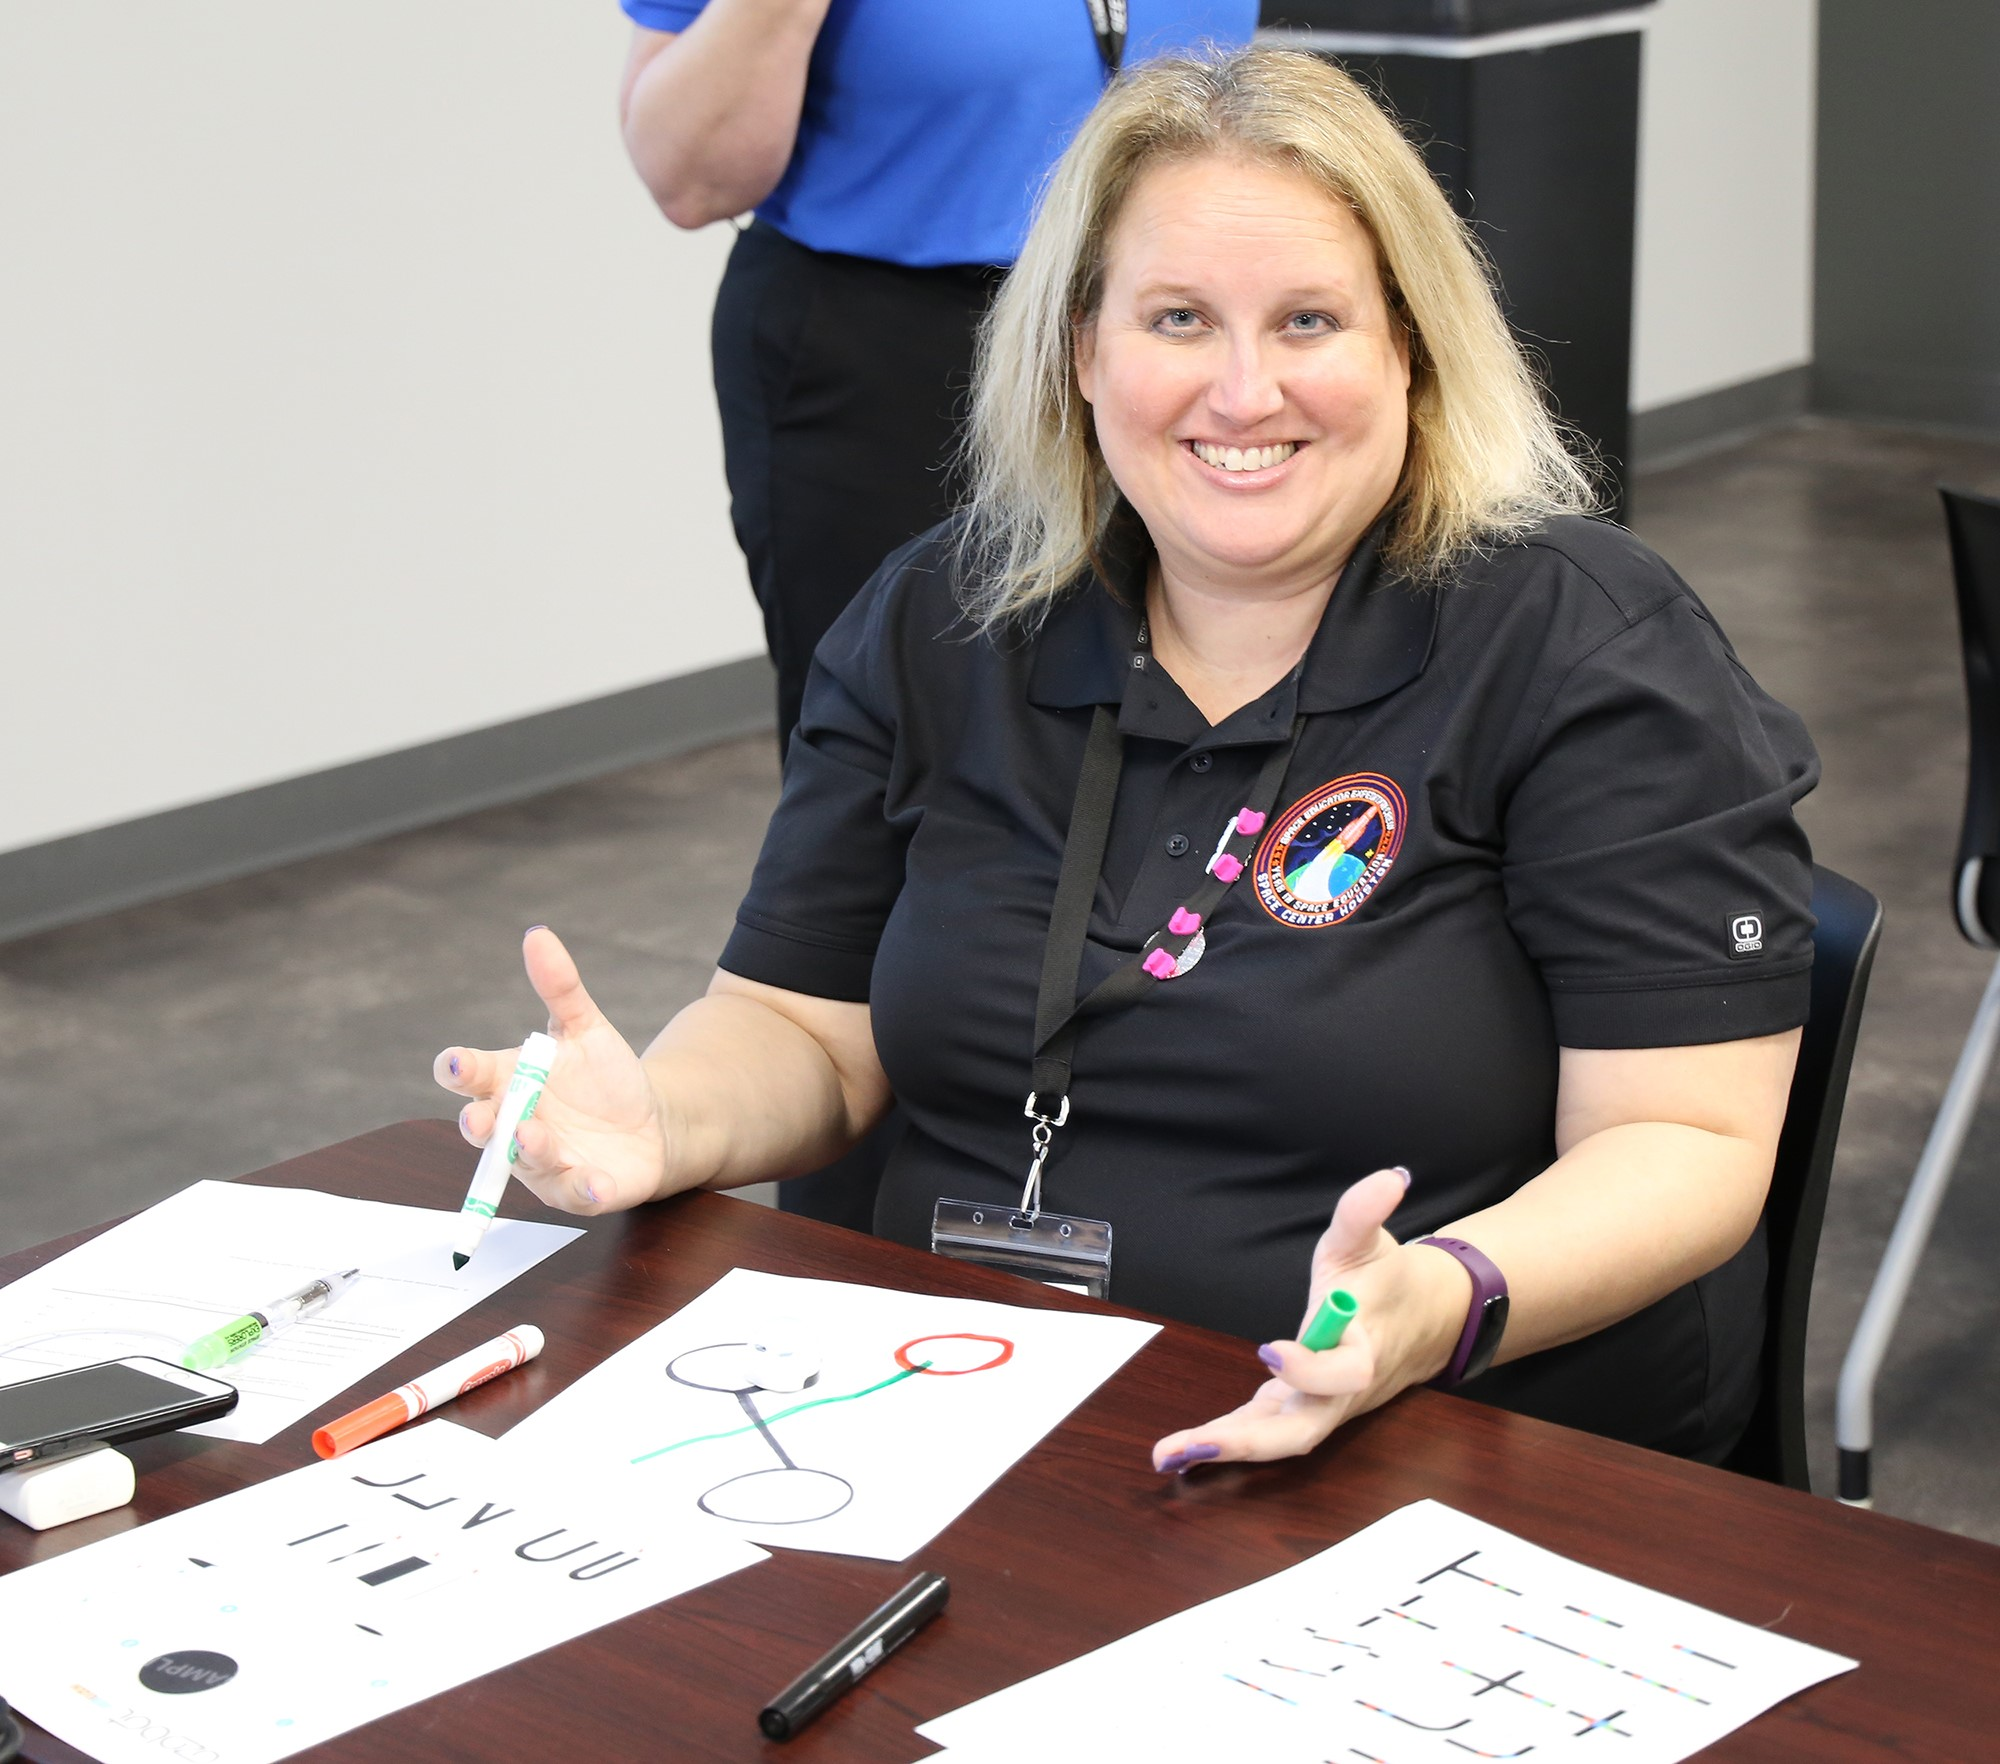 Jennifer Cheesman Takes A Break During A Robotics Session At The 24th Space Exploration Educators Conference At Space Center Houston. The Nonprofit Honored Cheesman With The Cherri Brinley Outstanding Educator Award At The Three Day Conference In Front Of 550 Fellow Teachers From Around The World. Photo Courtesy Of Space Center Houston.